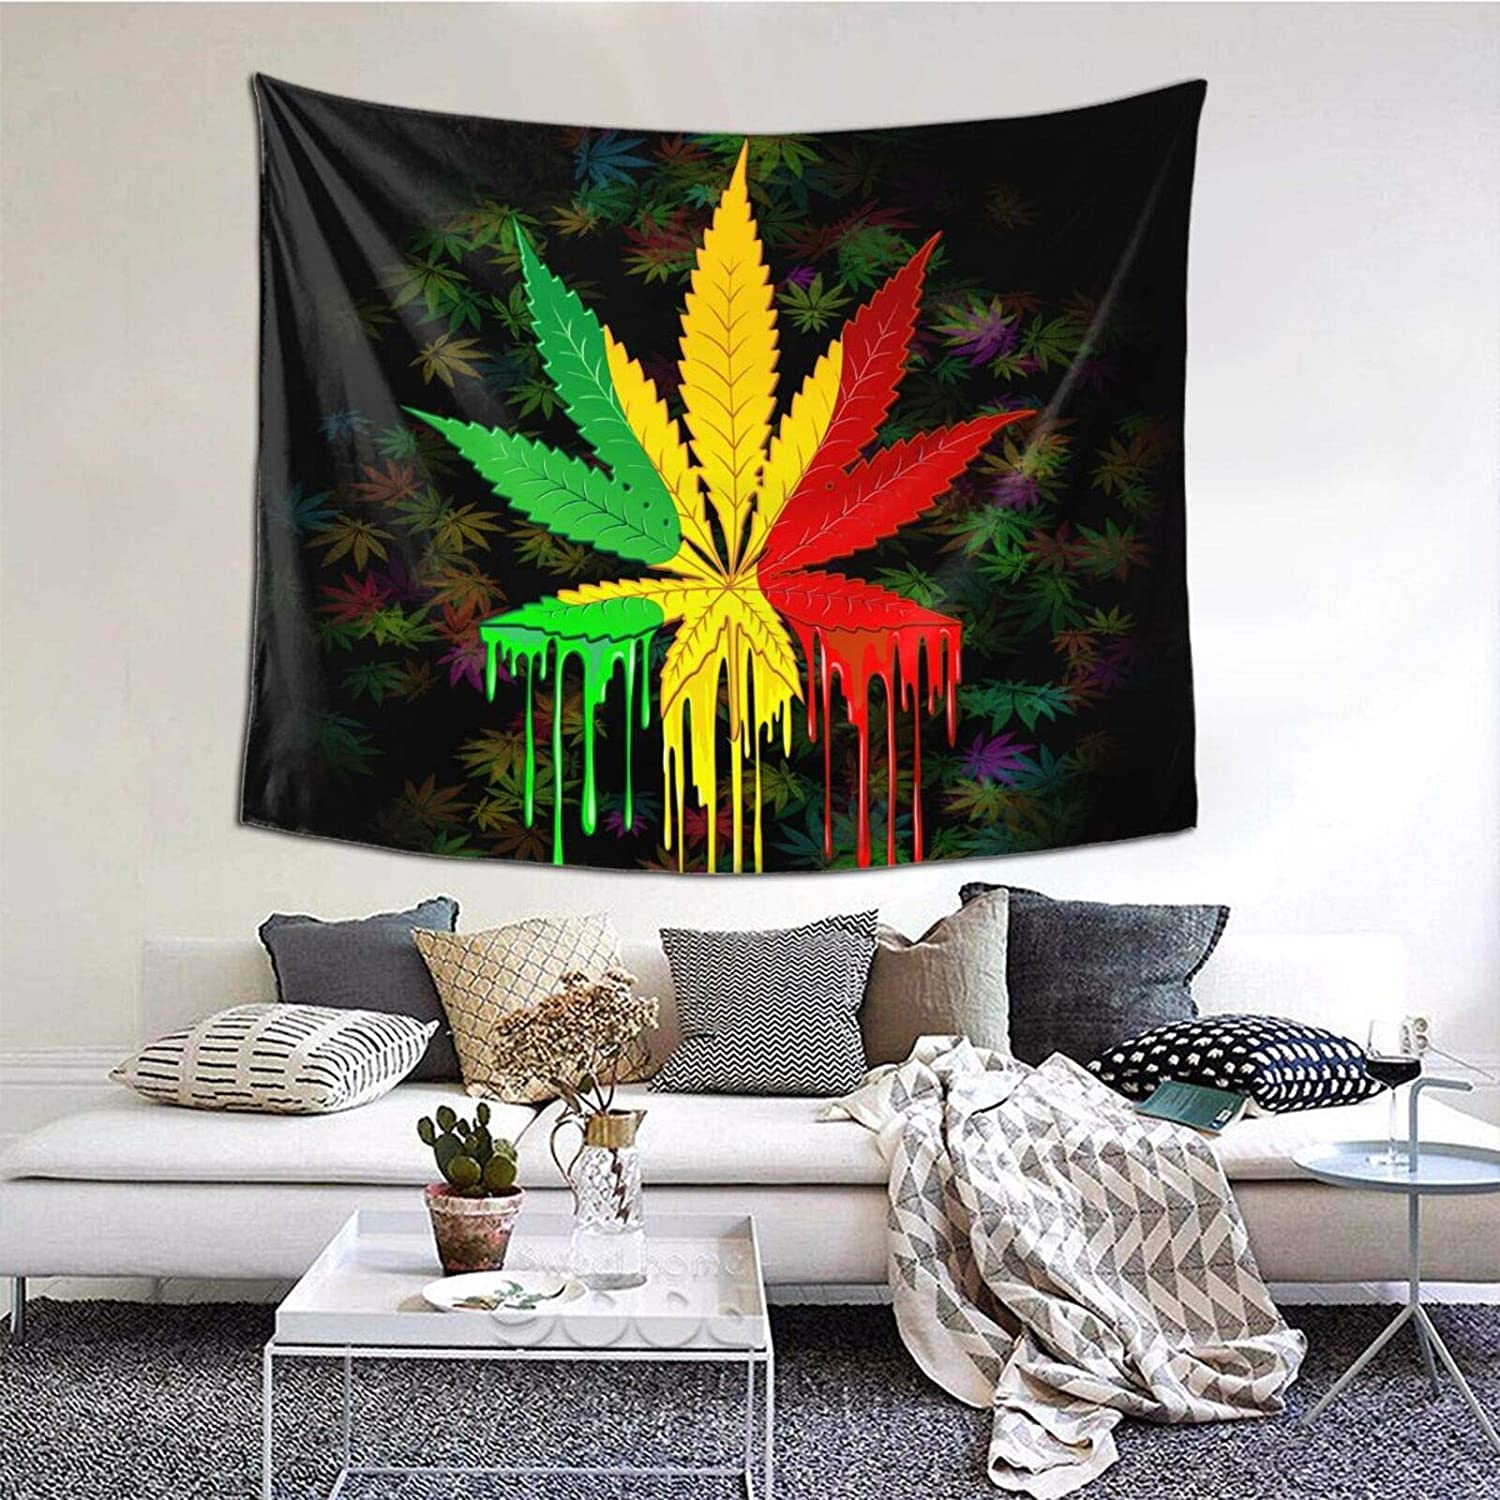 Marijuana Leaf Tapestry, Weed Psychedelic Tapestry Wall Hanging for Bedroom, Reggae Rasta Tie Dye Jamaica Tapestry Trippy Mexico Red Yellow Green Home Decor, 50X60 inches